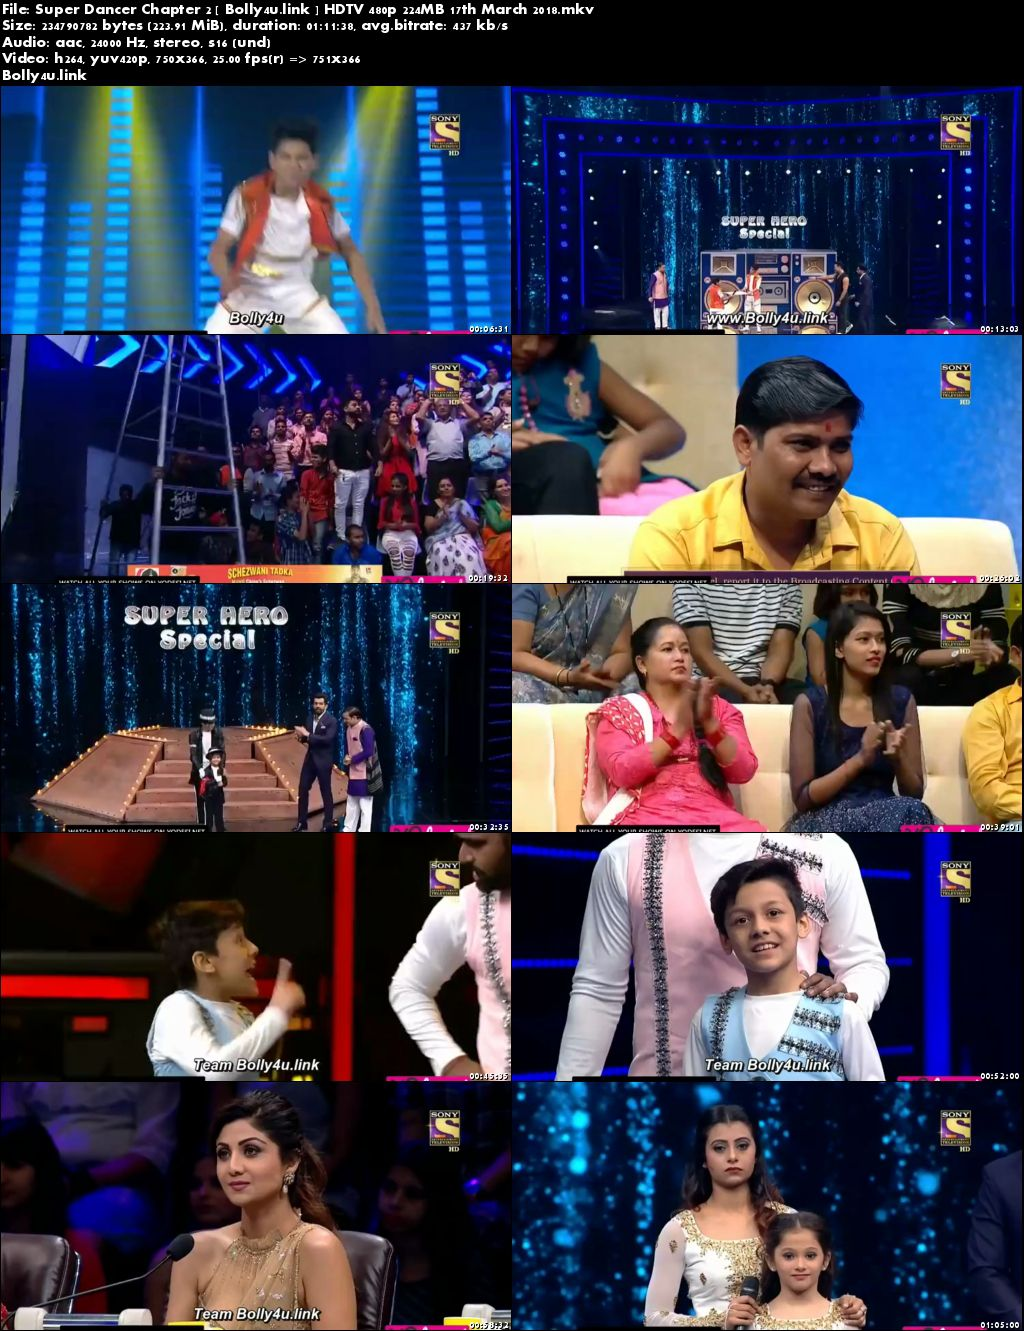 Super Dancer Chapter 2 HDTV 480p 200MB 17 March 2018 Download